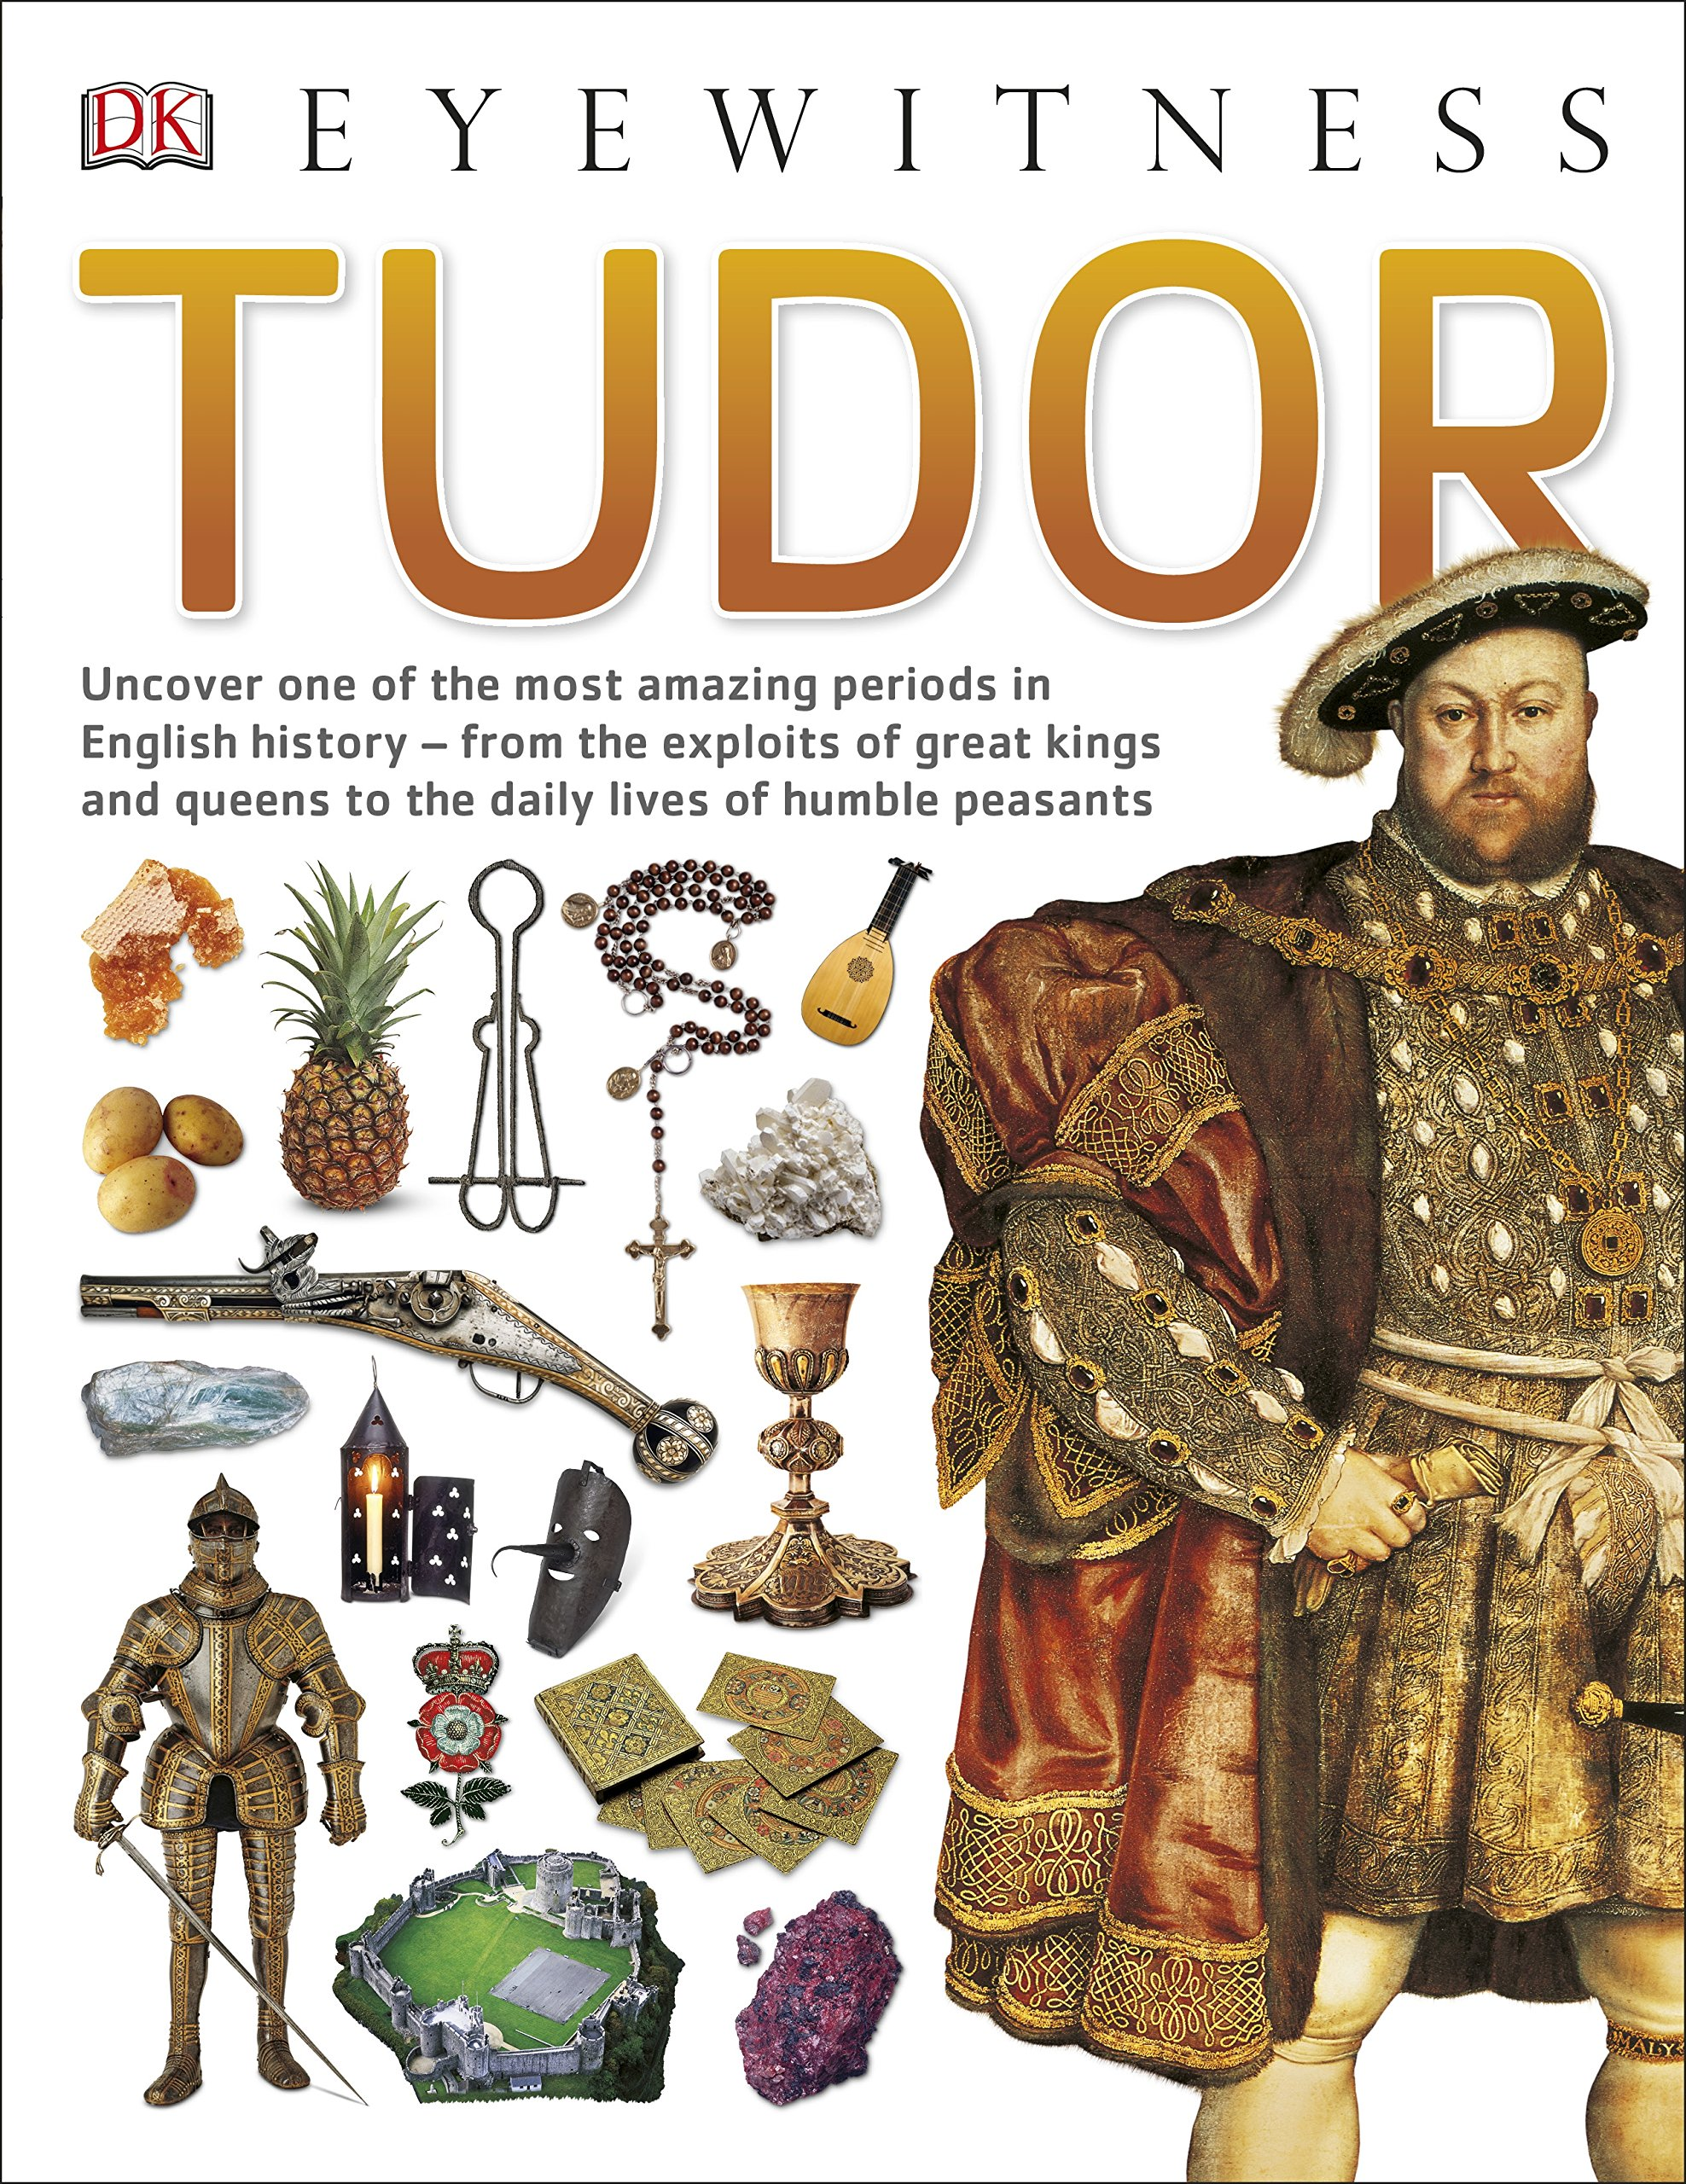 Primary homework help co uk tudors.. 4th grade social studies homework help